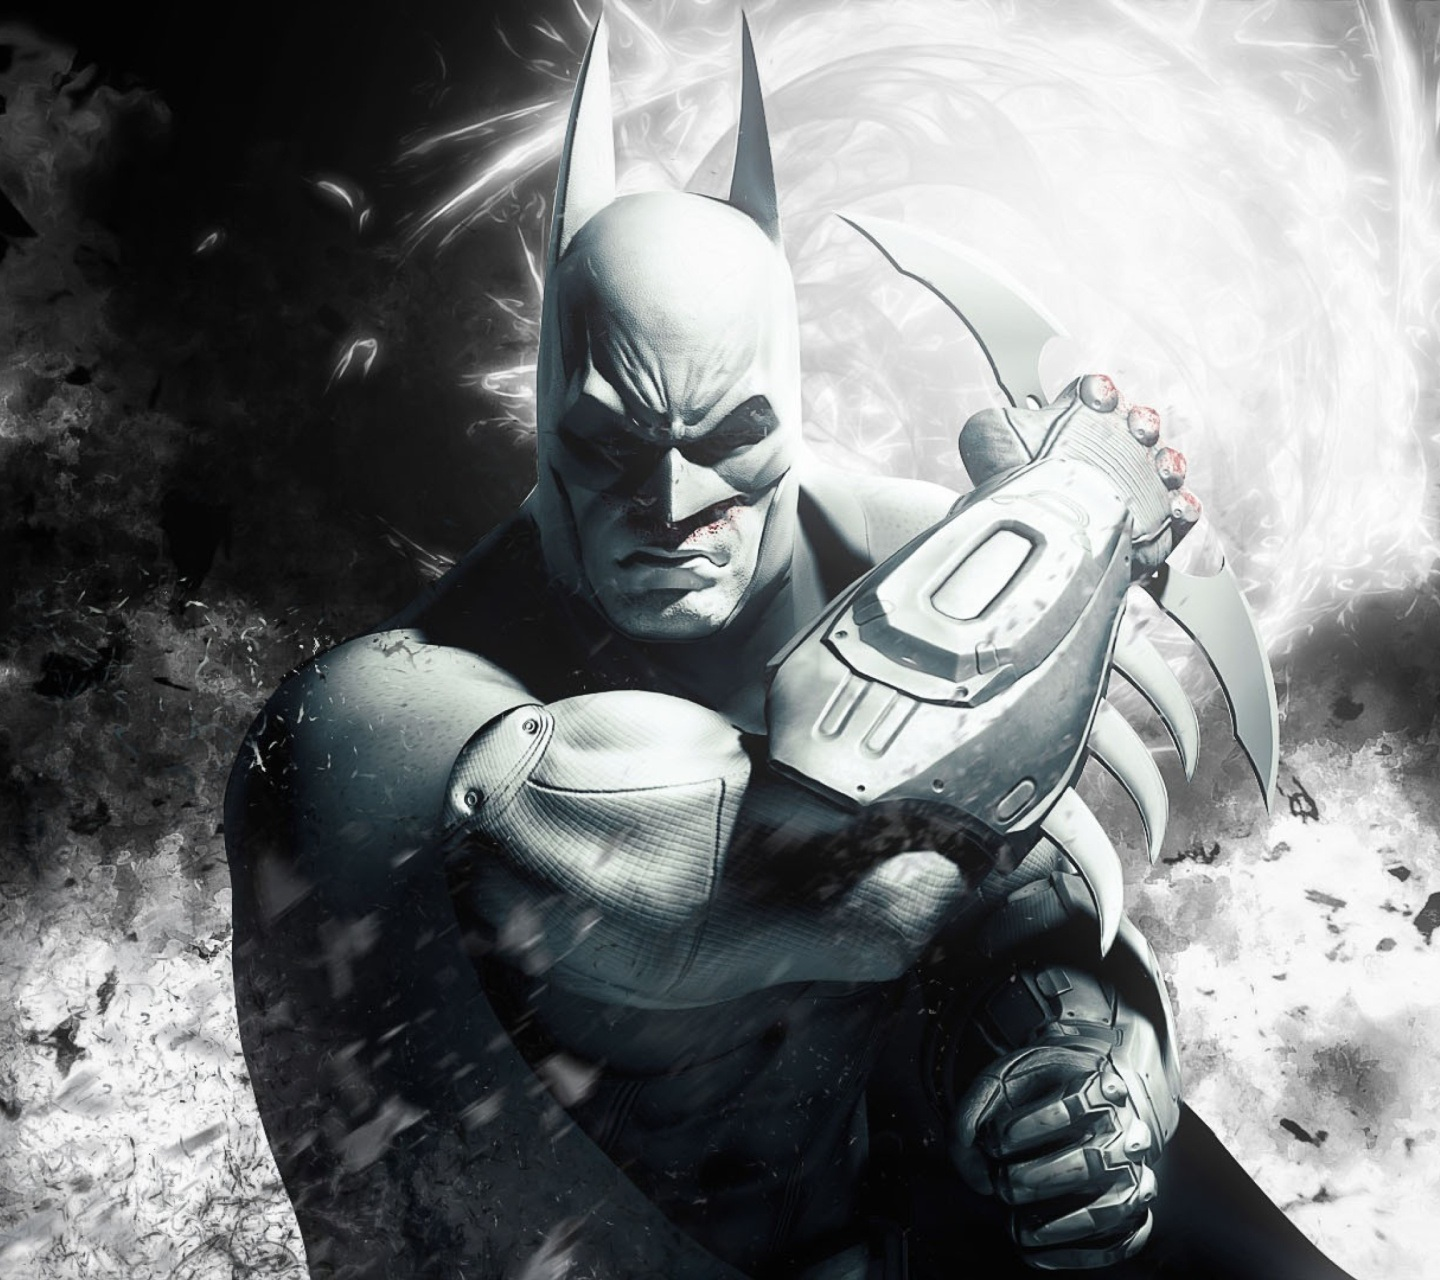 Batman Arkham City 1440x1280 wallpaper1440X1280 wallpaper screensaver 1440x1280